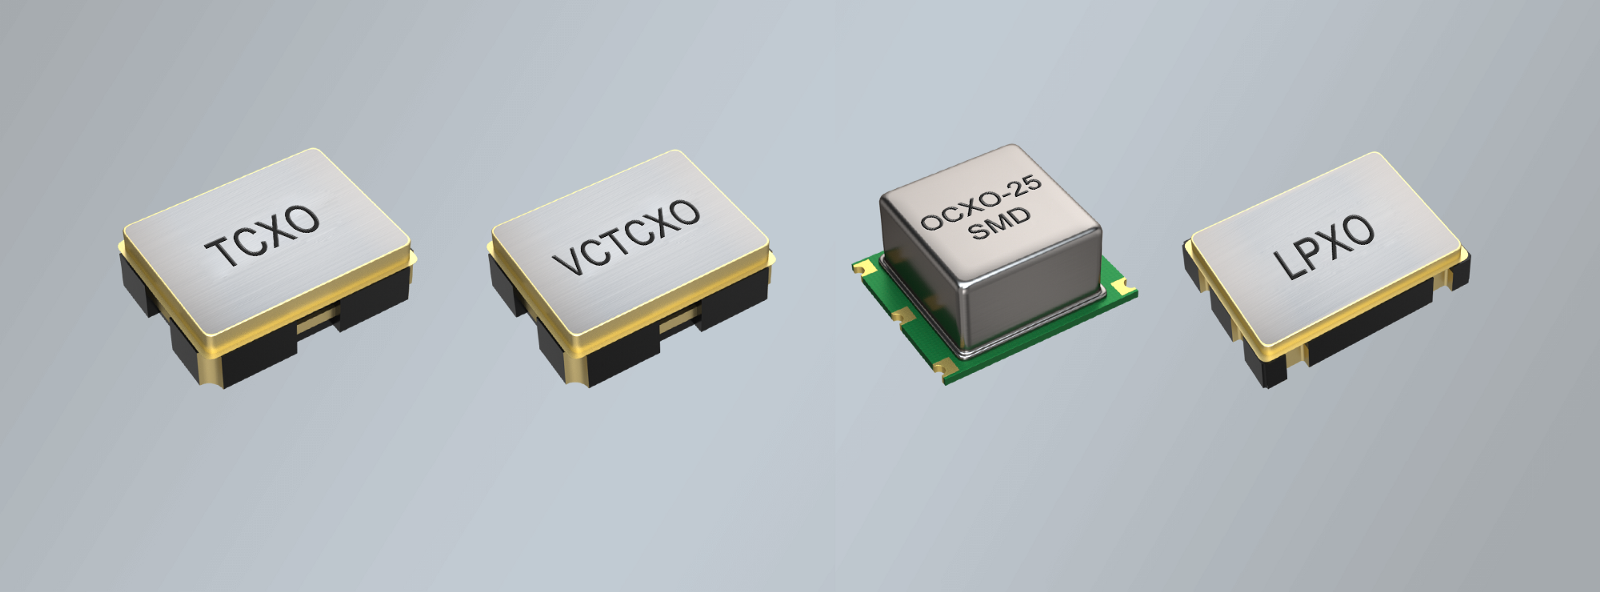 Hw Electronics Challenges Of Choosing Oscillator For Your Application Crystal Circuit Tutorial